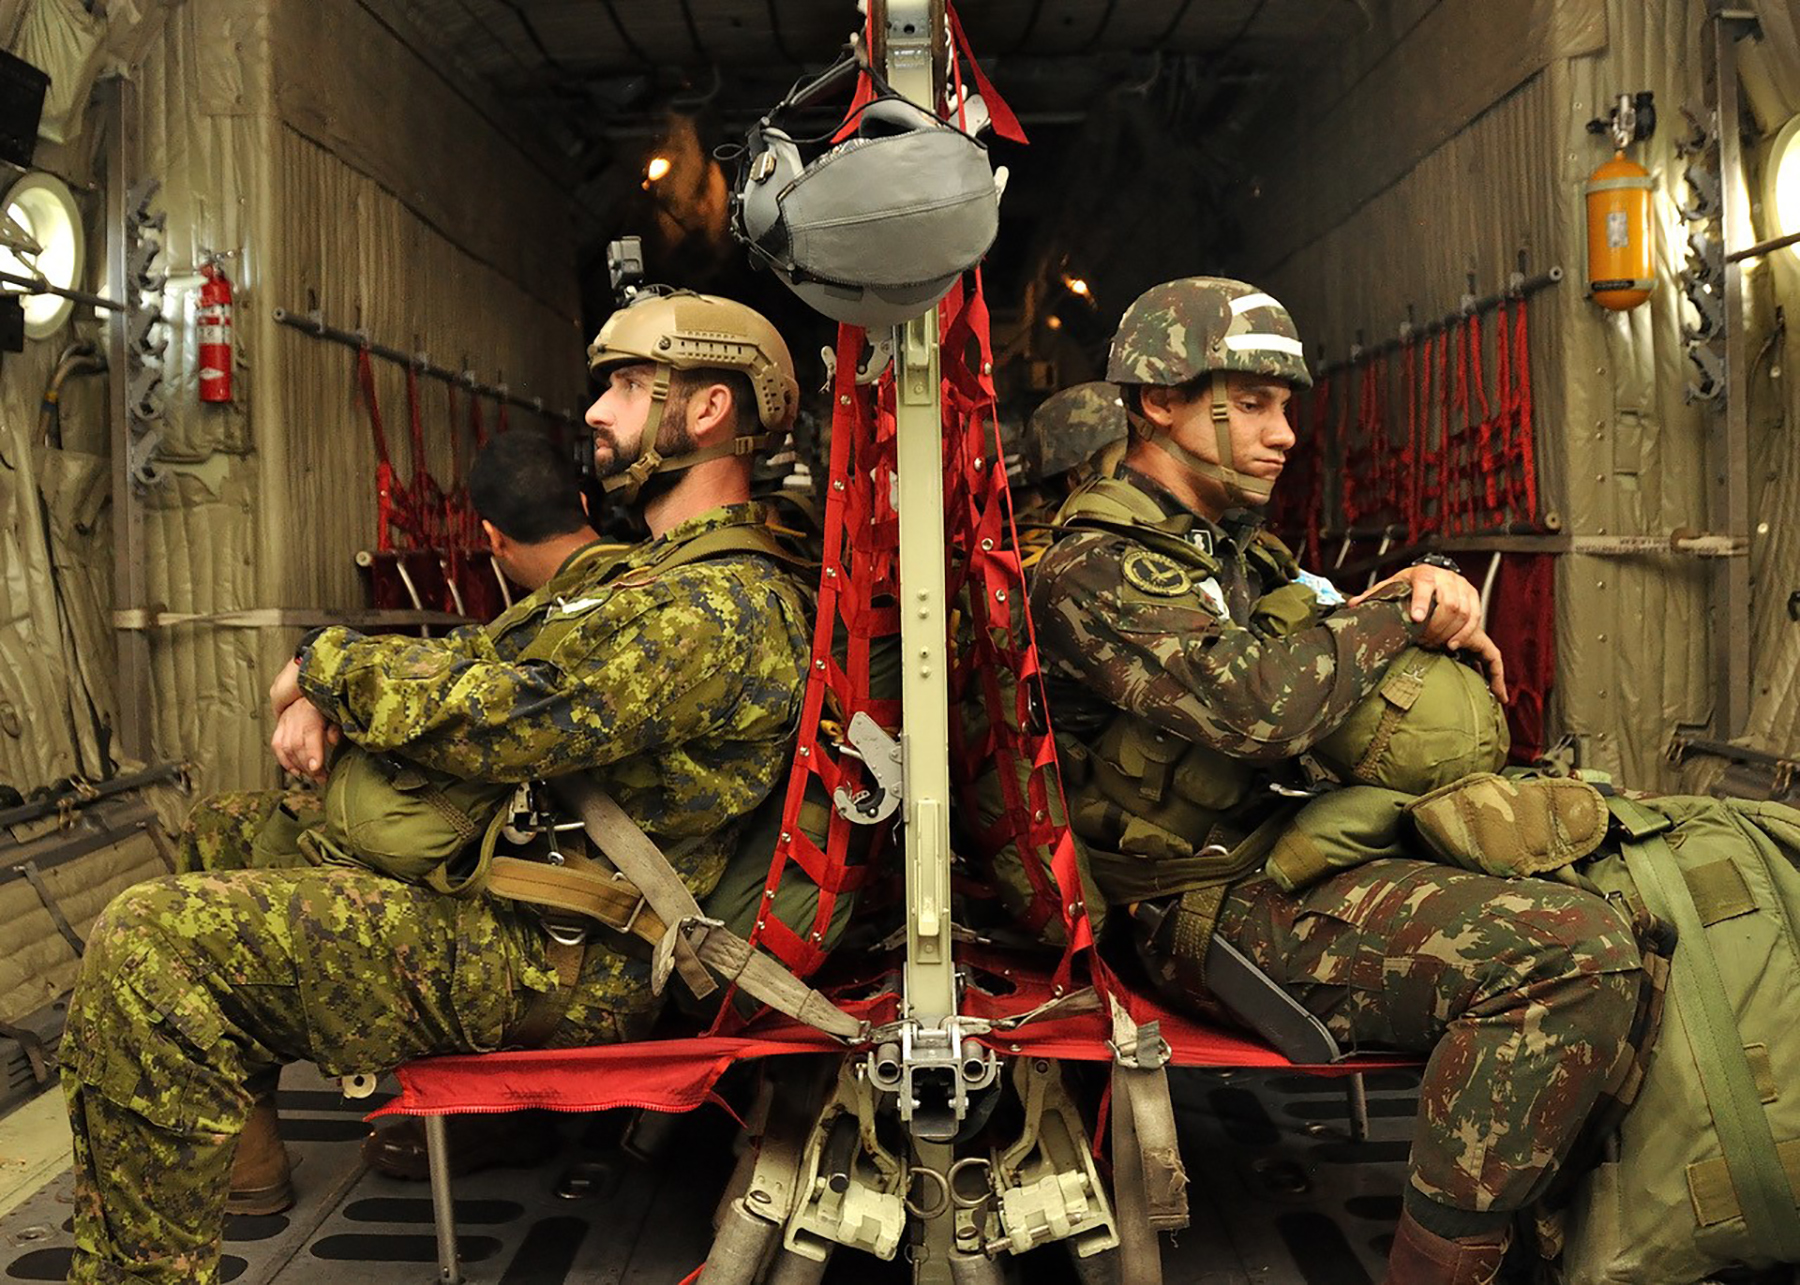 Onboard a Brazilian Air Force C-130, on November 20, 2018, Sergeant Alex Bossinotte (left), a jumpmaster from the Canadian Army Advanced Warfare Centre at CFB Trenton, and 1st Lieutenant Yuri Tavares (right) of the Brazilian Army Parachutist Instruction Center, take part in an airborne exercise during CRUZEX 2018, the key South American exercise that brings together militaries from eight allied and partner nations to conduct a wide range of training. PHOTO: Submitted